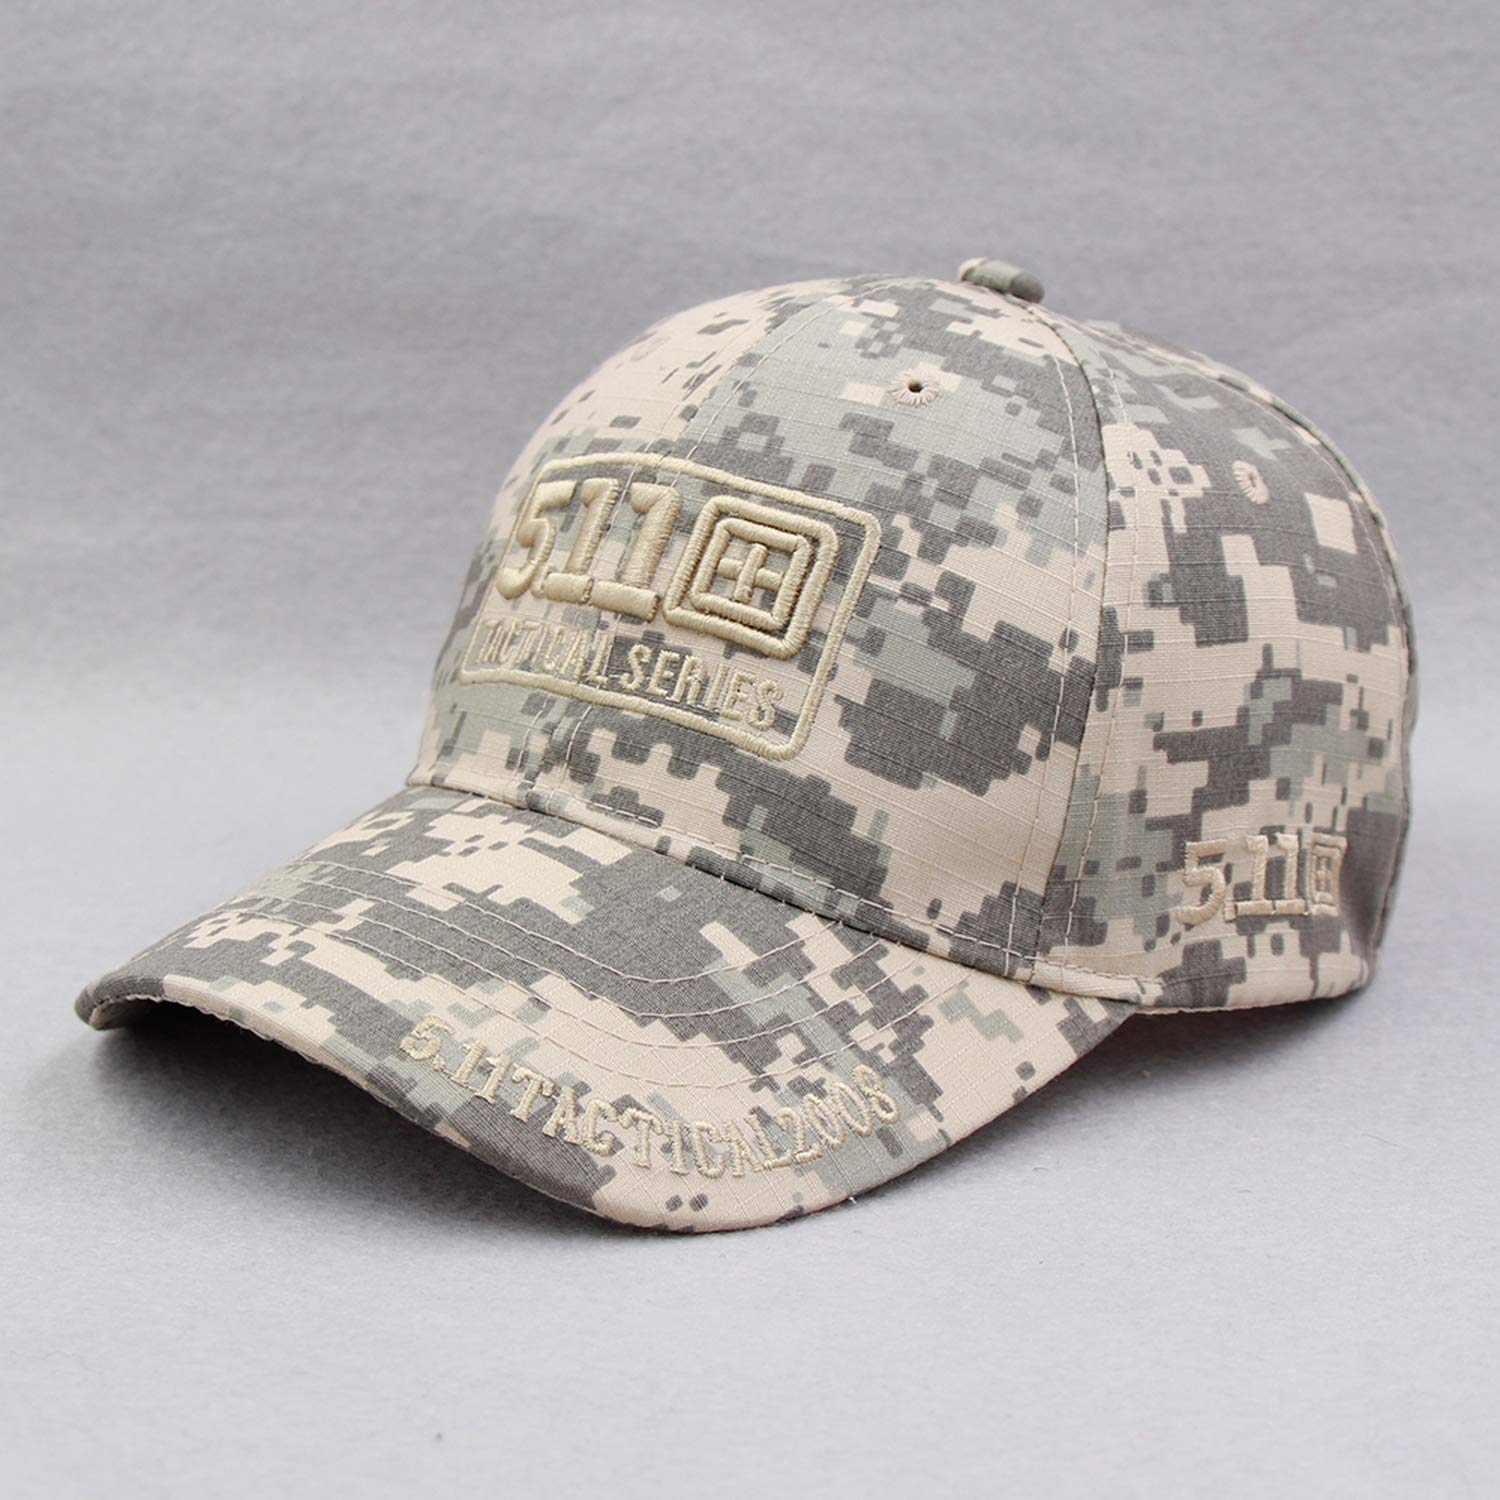 Ron Kite Army Camouflage Baseball Cap Tactical Caps Outdoor Breathable Sunshade Mountaineering Casual Hat New Hats